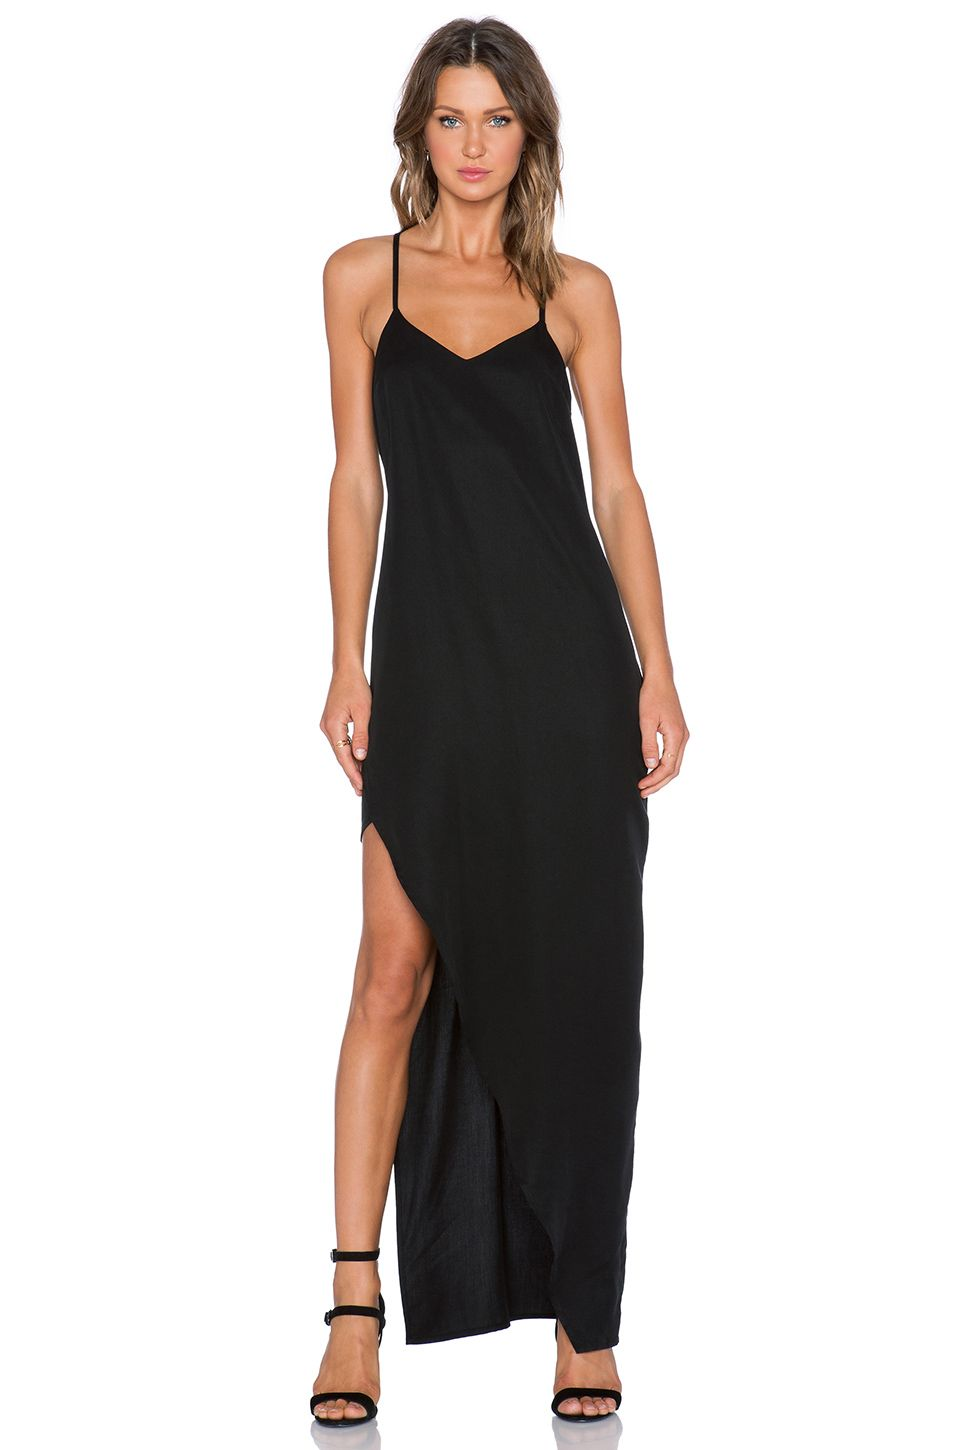 State of being anthracite maxi dress in black style all dressed